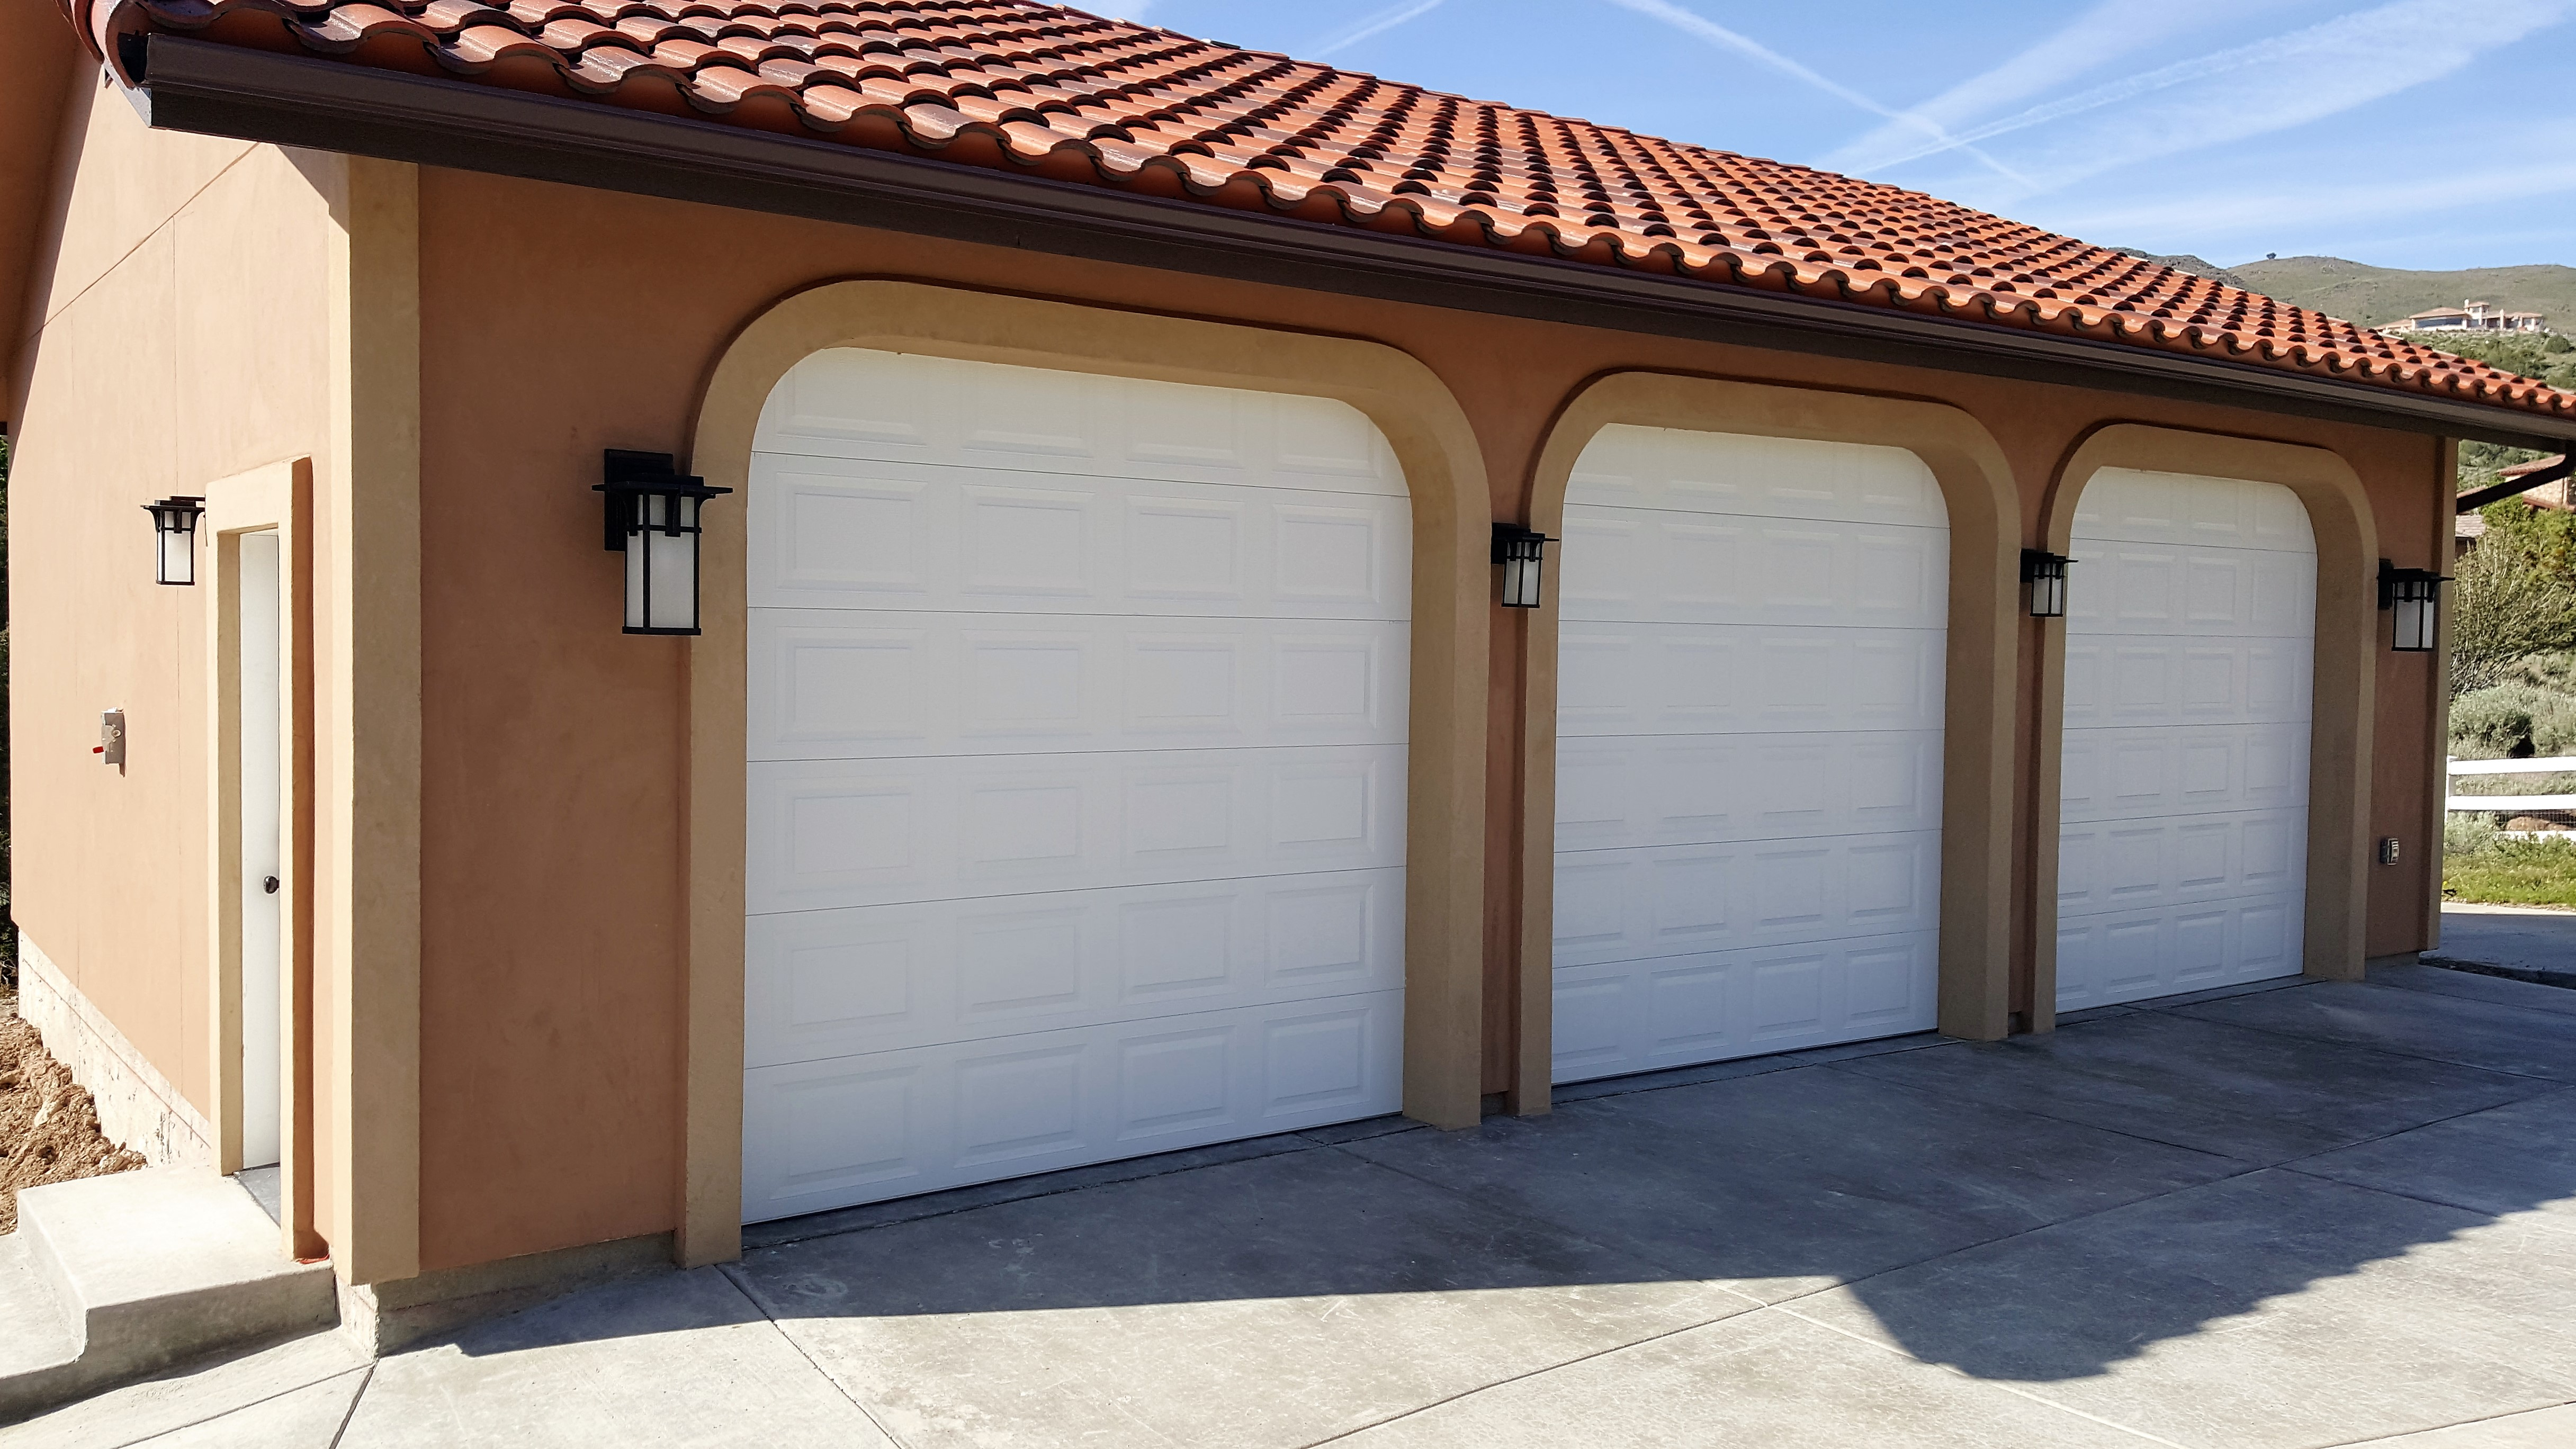 Dlr construction llc our work completed garage completed garage rubansaba